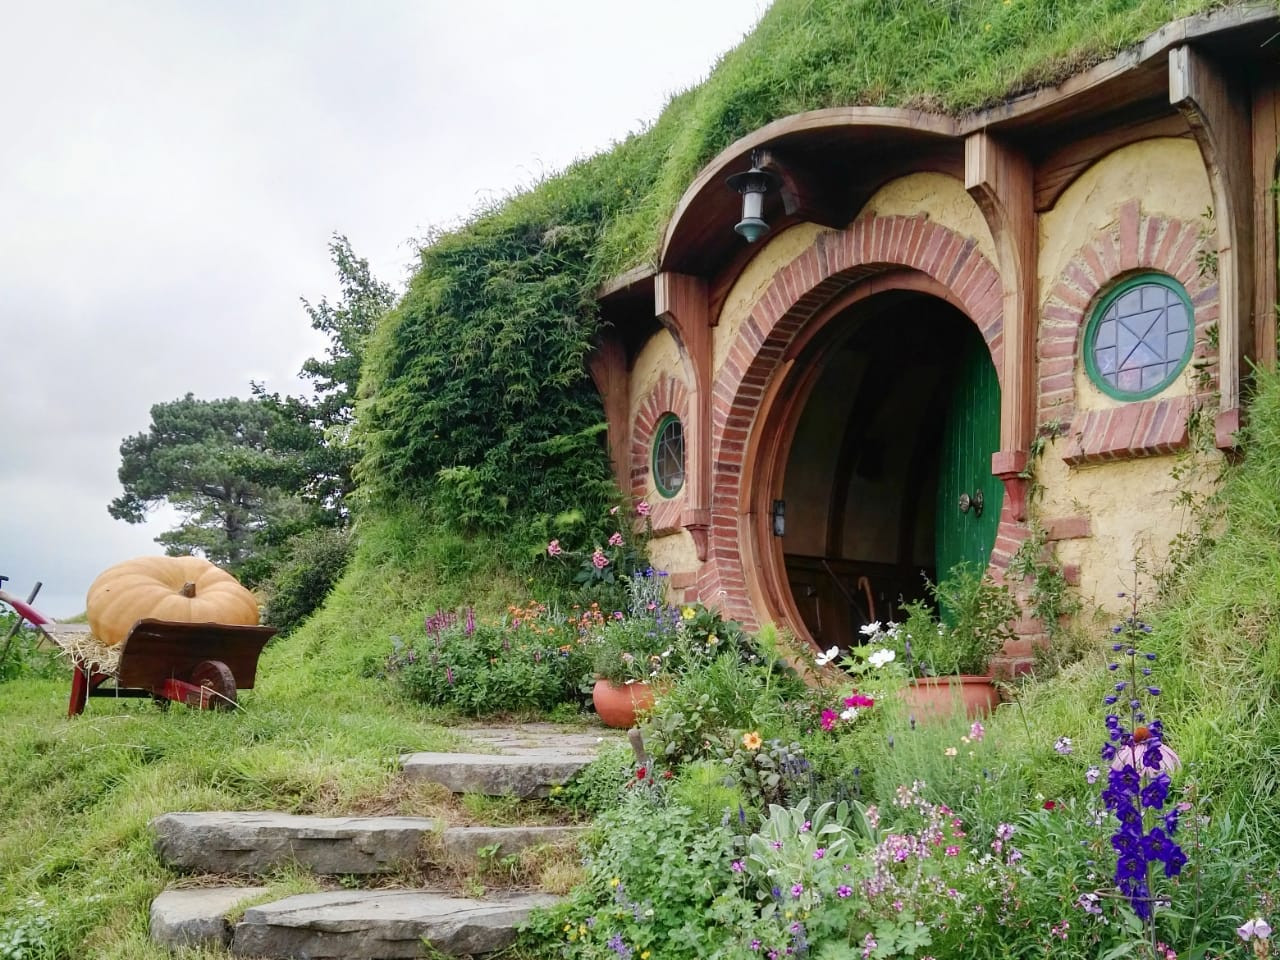 The iconic Bag End, Bilbo Baggins' home, stands pristine and true at the Hobbiton movie set in Matamata, New Zealand.